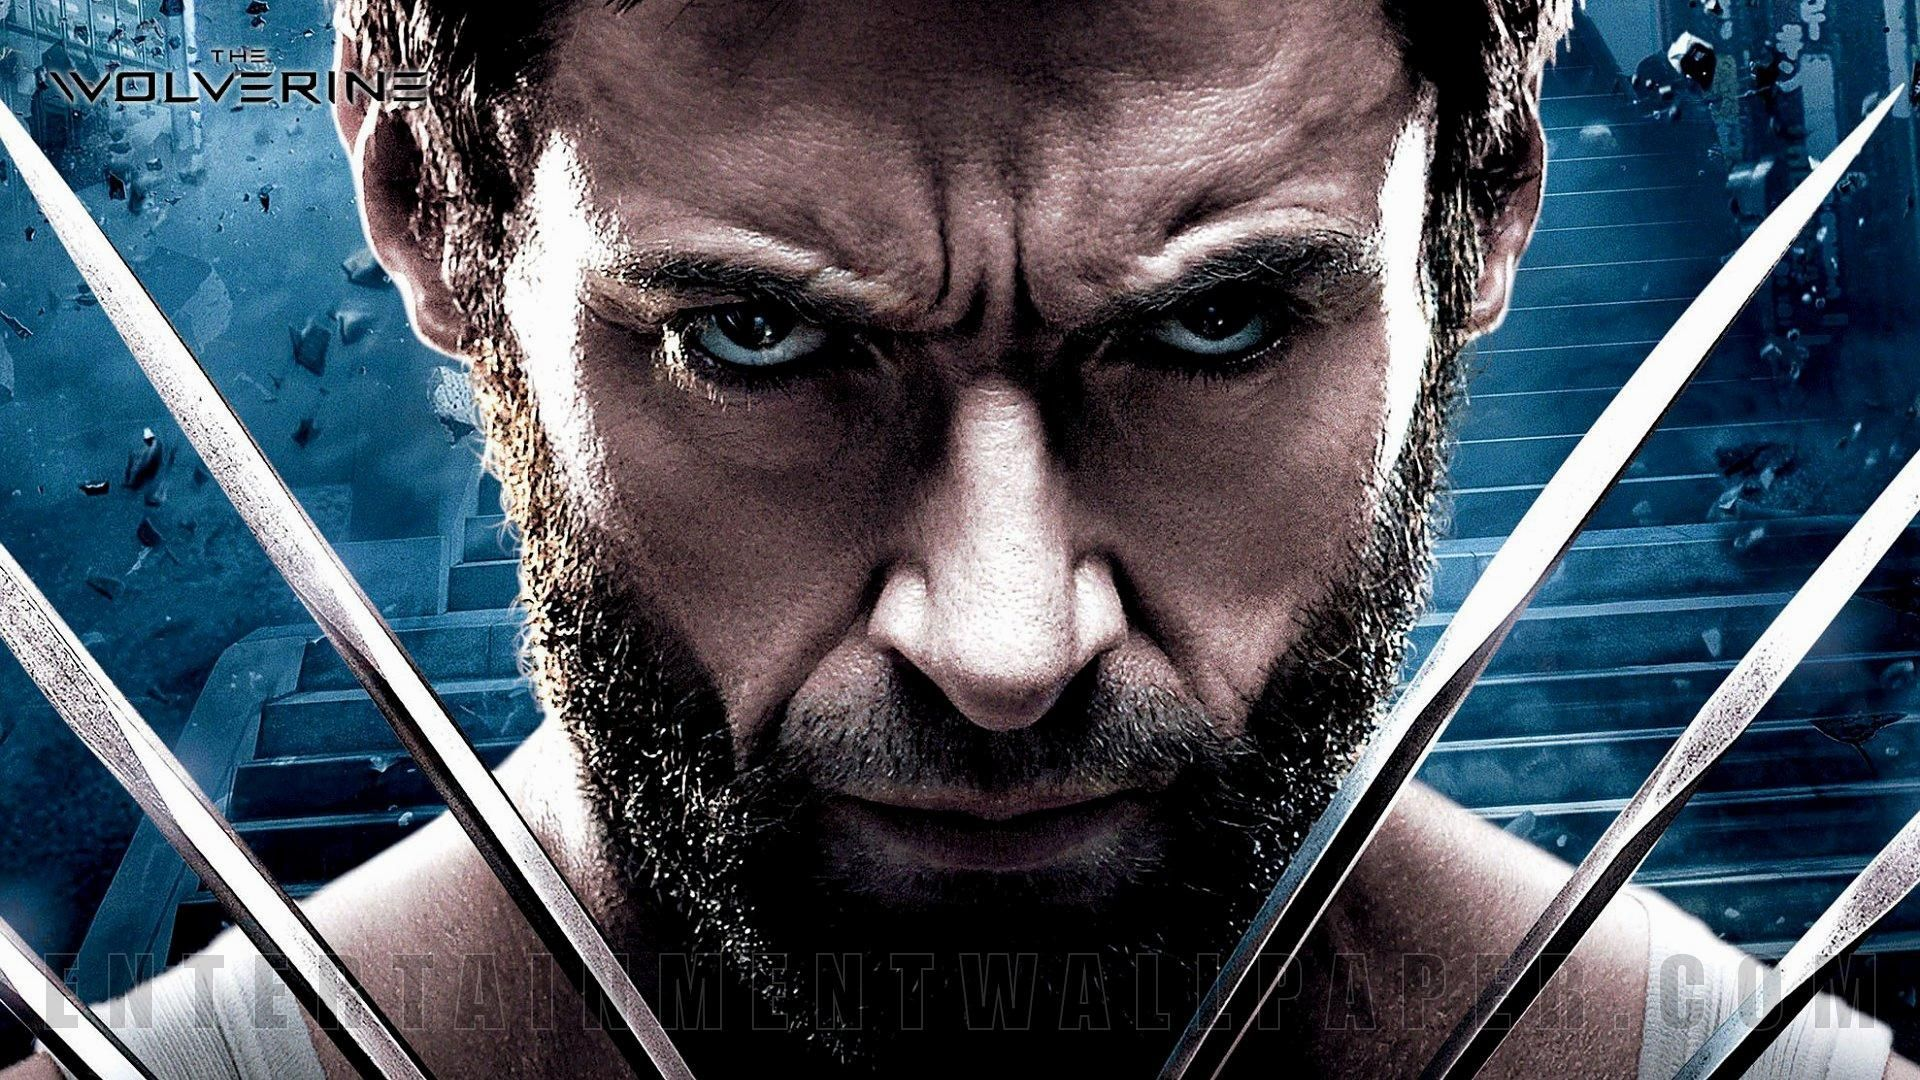 Wolverine Hd Wallpapers Backgrounds Wallpaper Page 19201080